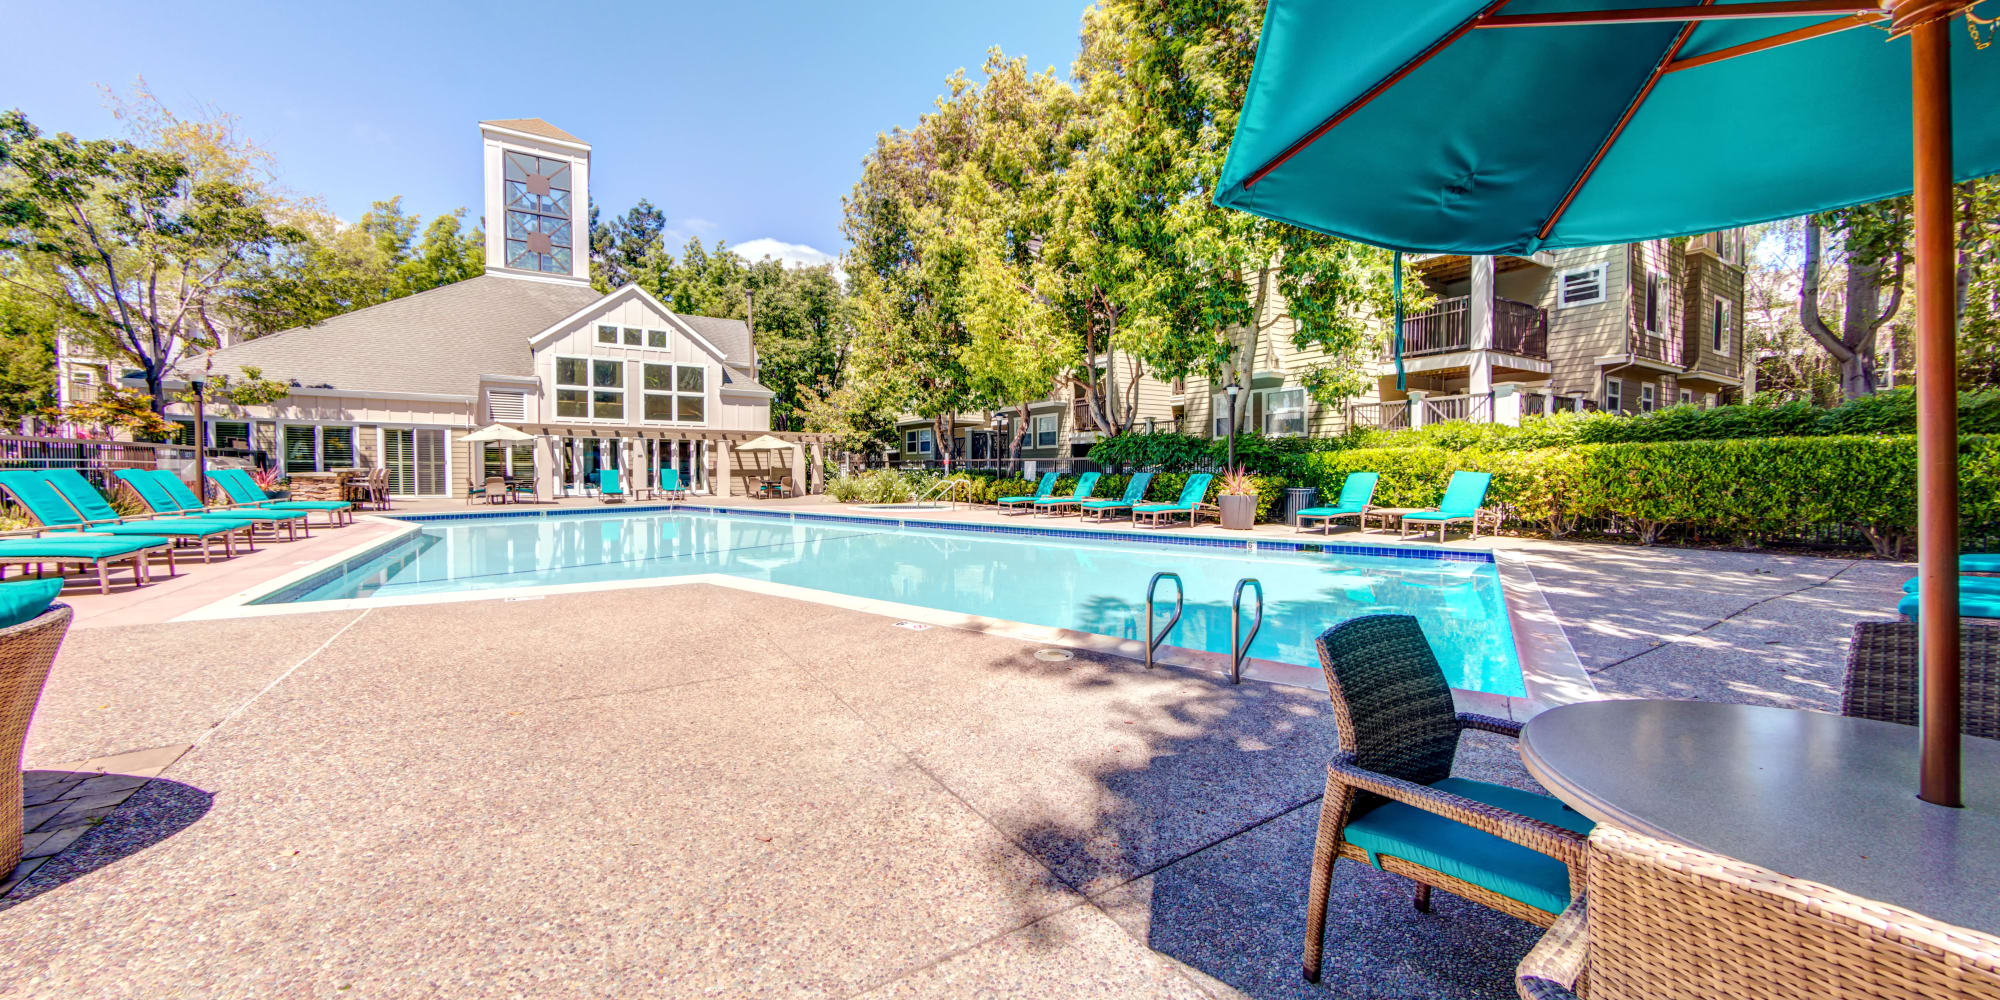 Apartments at Sofi Sunnyvale in Sunnyvale, California